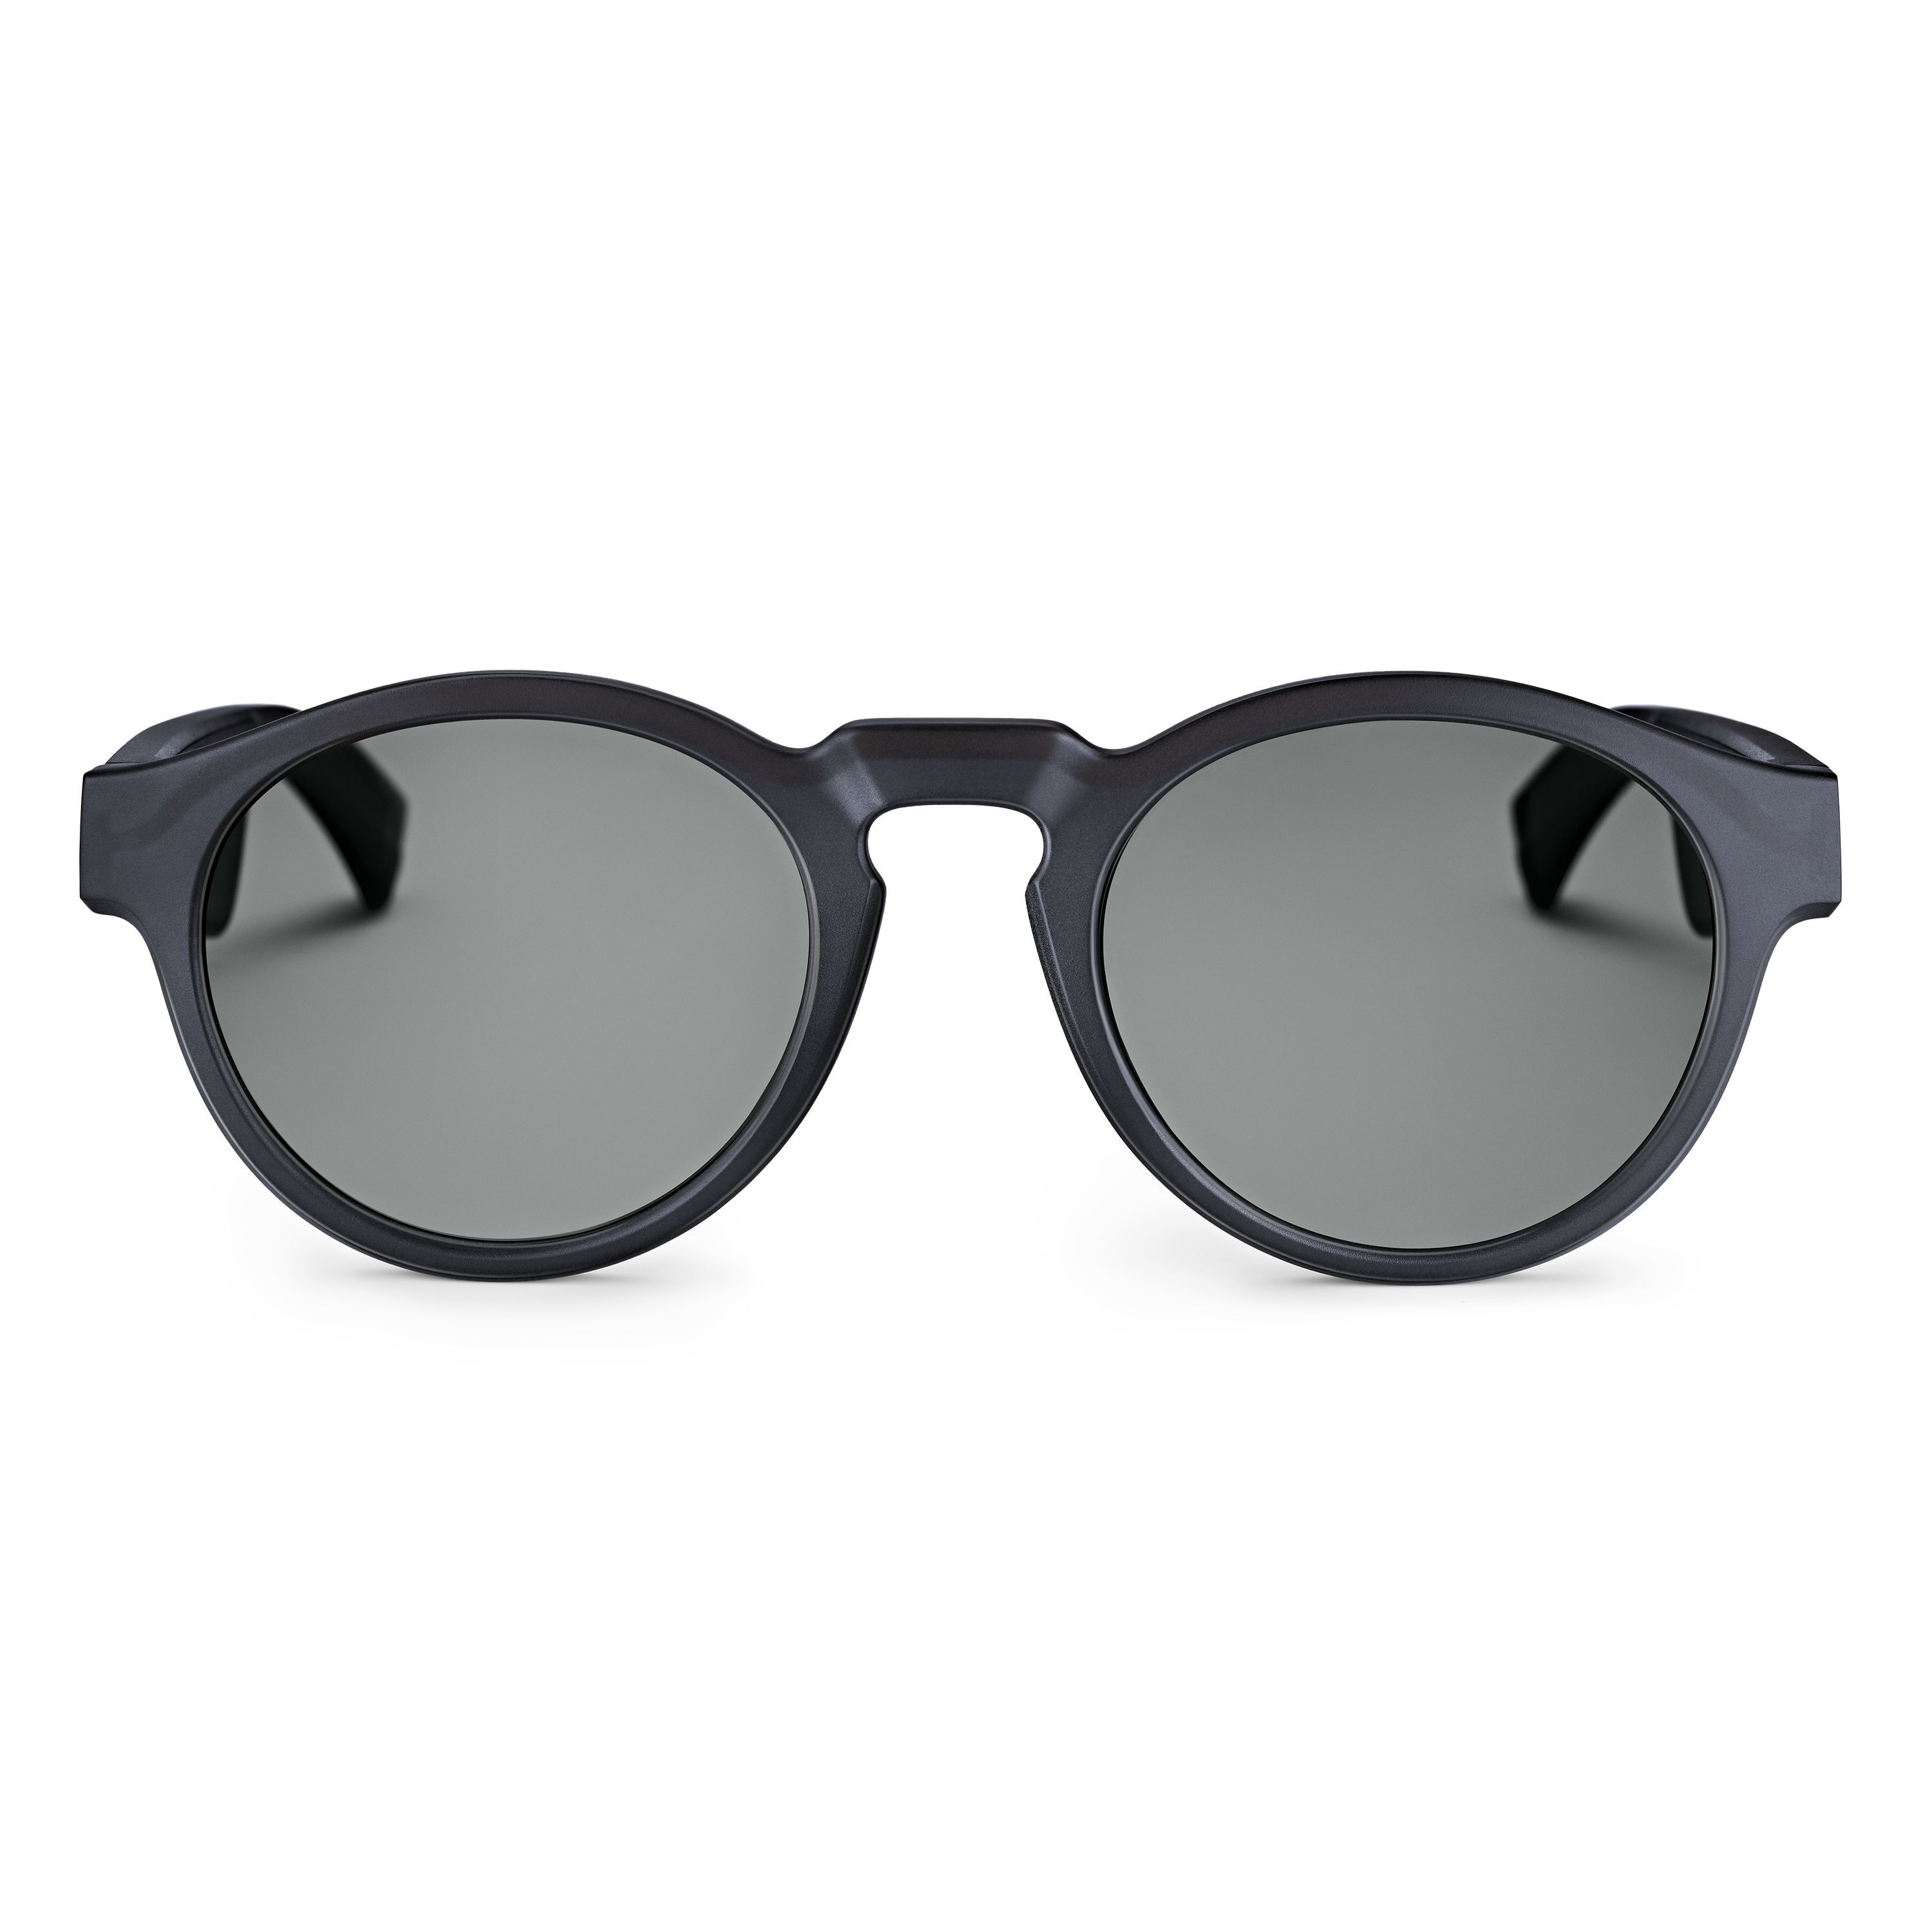 8c164588c9 Bose Frames Review 2019  The First Smart Sunglasses That Are ...